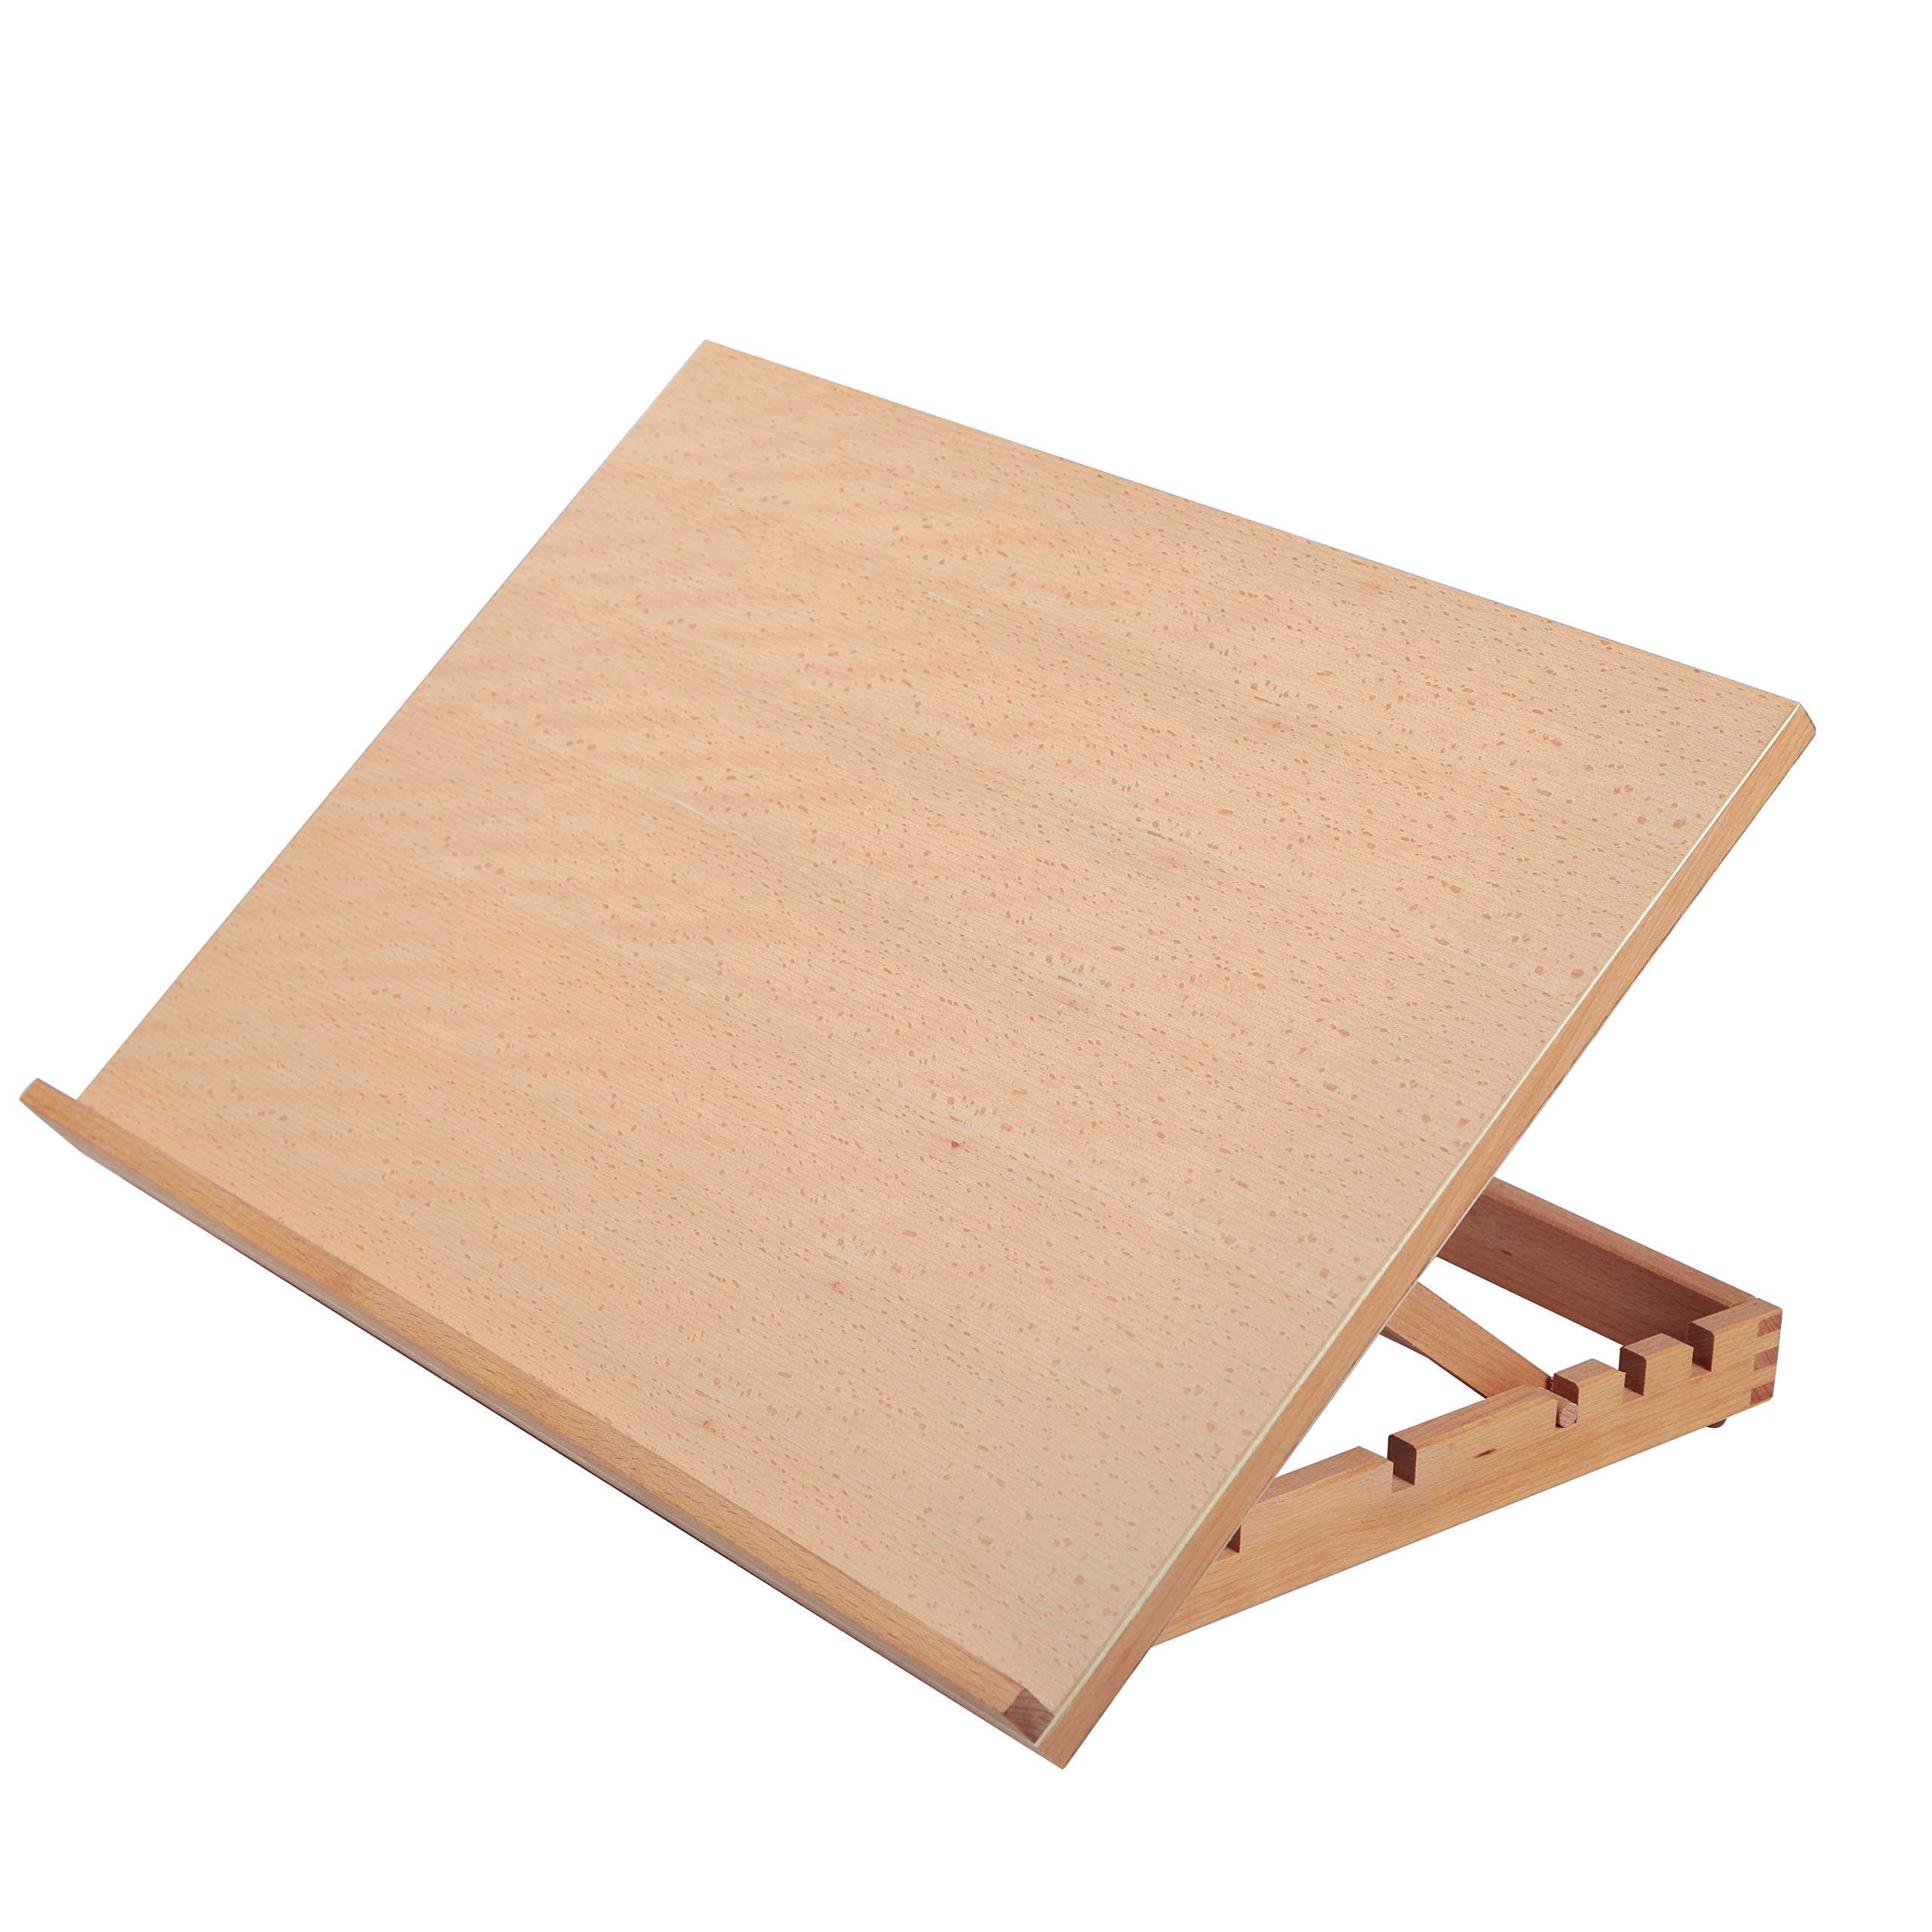 23 2/9'' L X 16 1/2'' W Adjustable (5 - Position ) Slant Drafting Table Board for Drawing, Diamond Painting, Puzzle